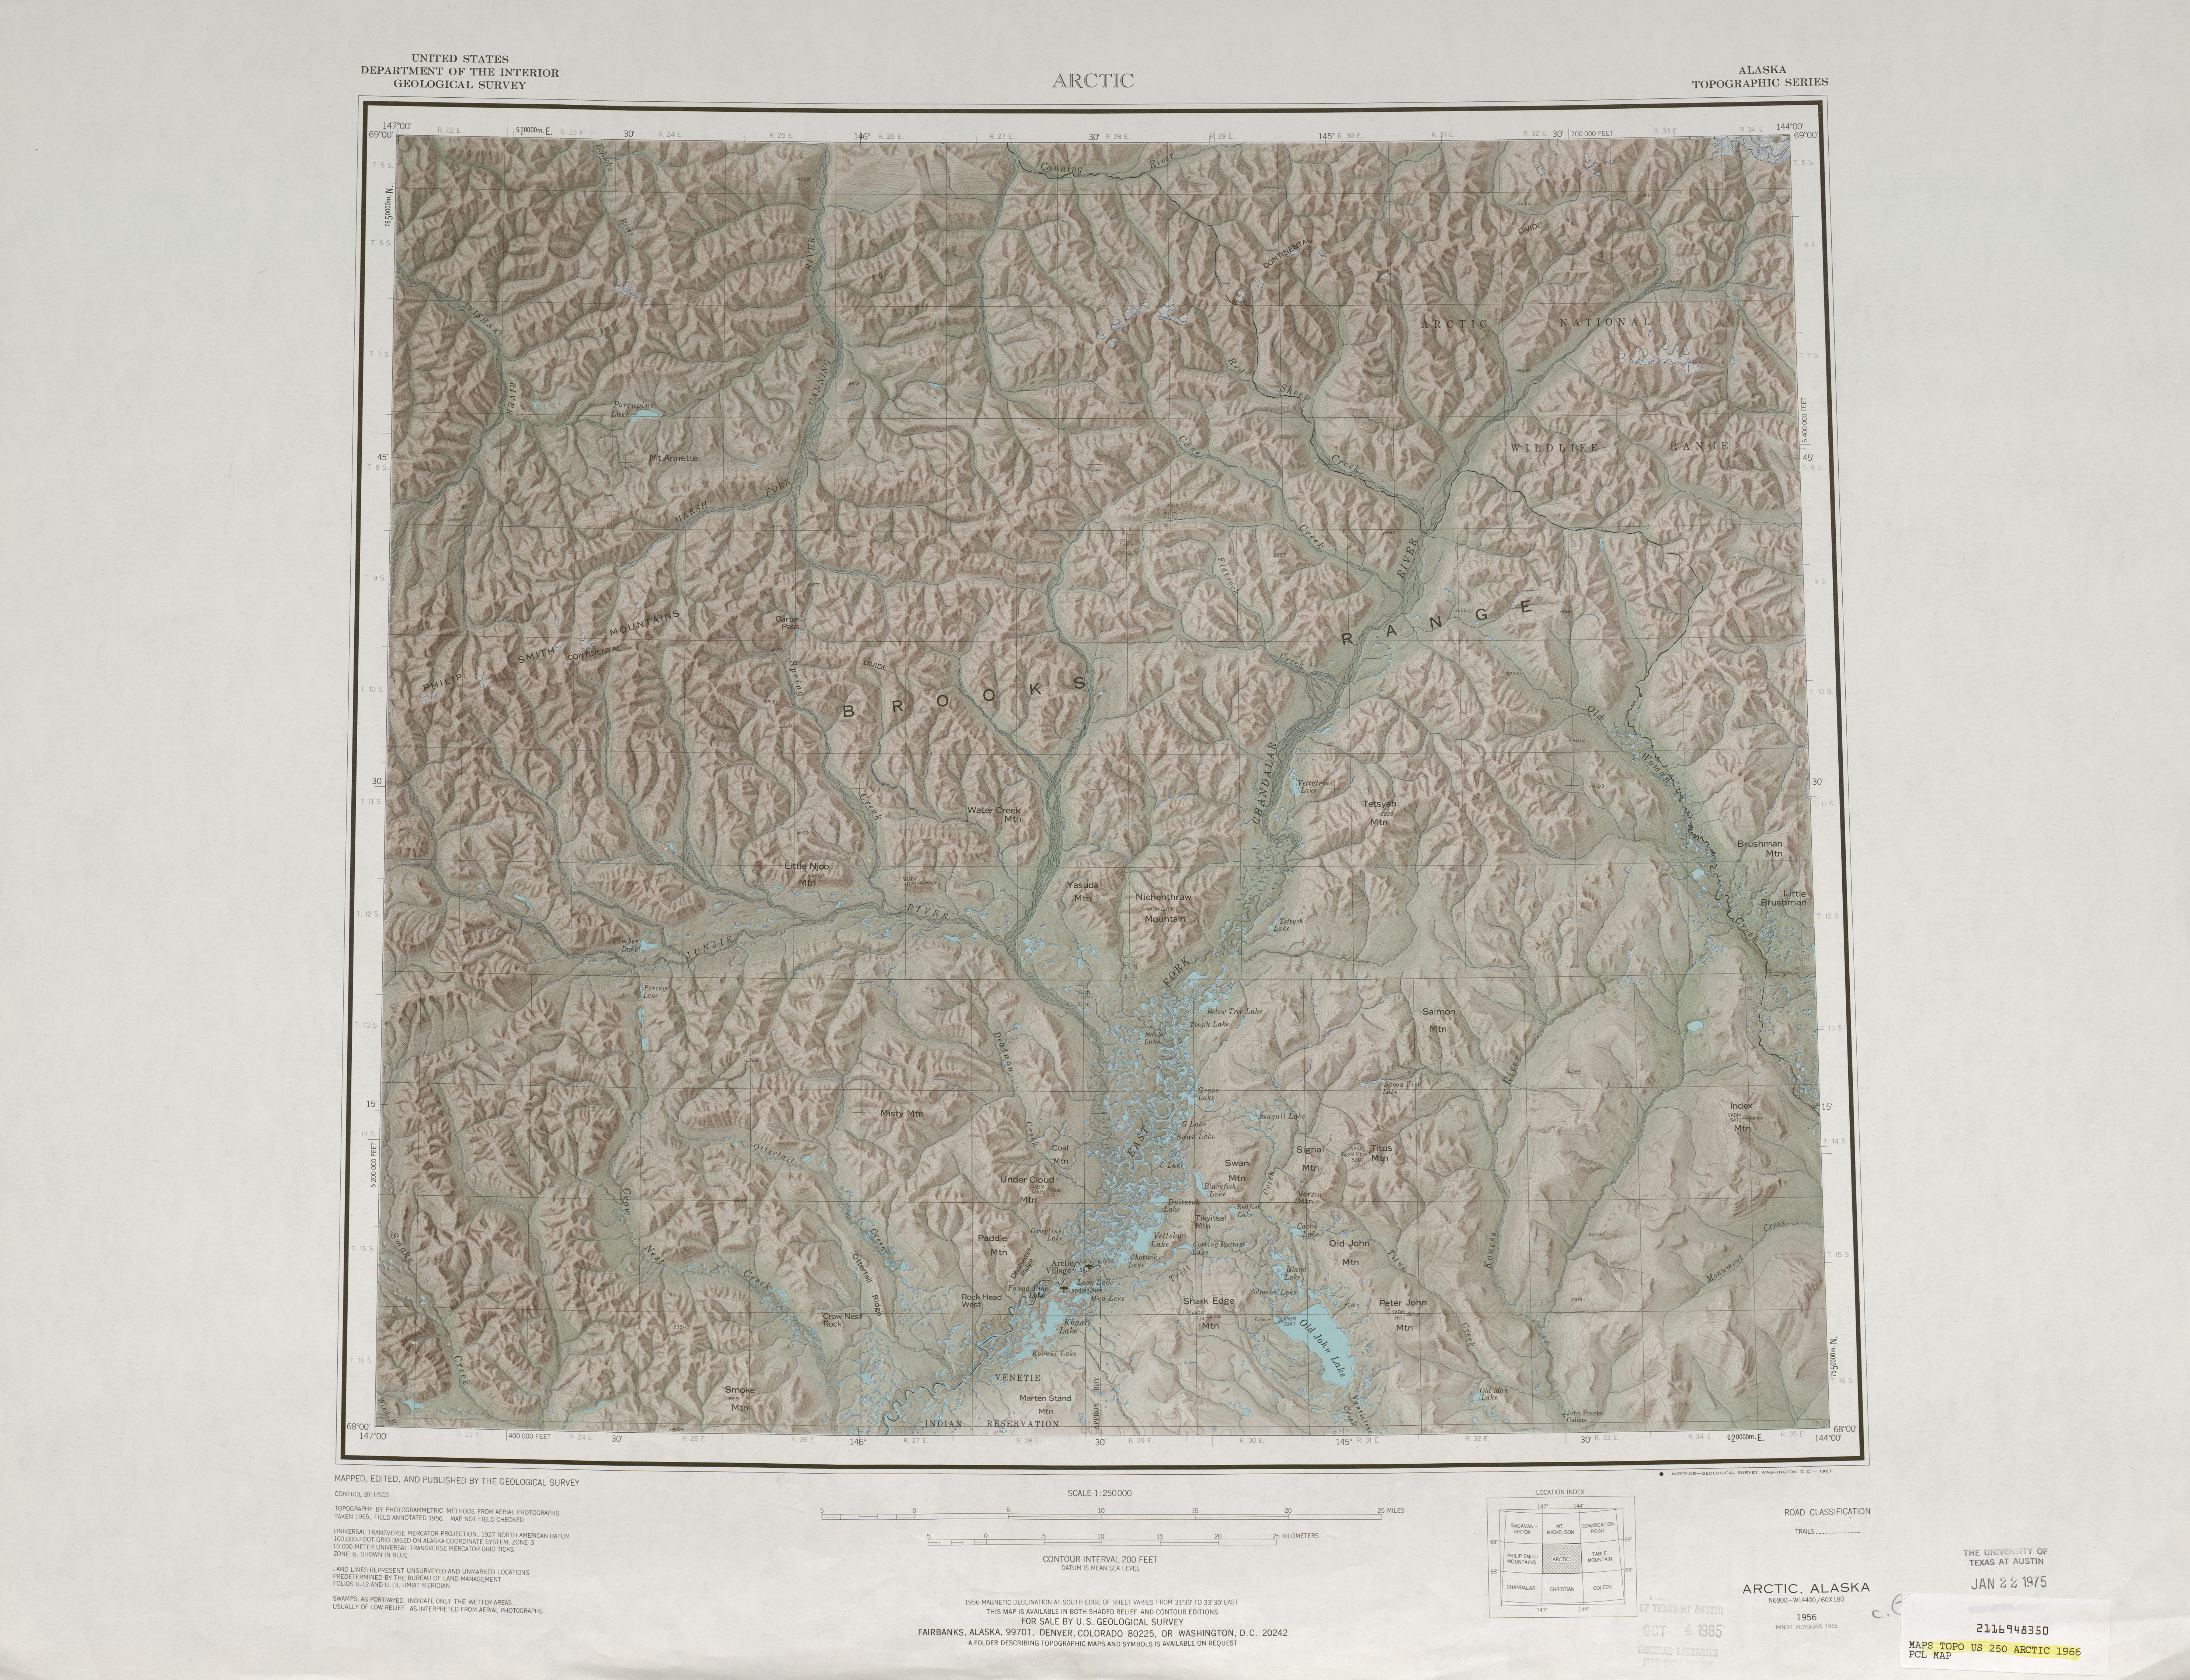 Color art printing anchorage - Alaska Topographic Maps